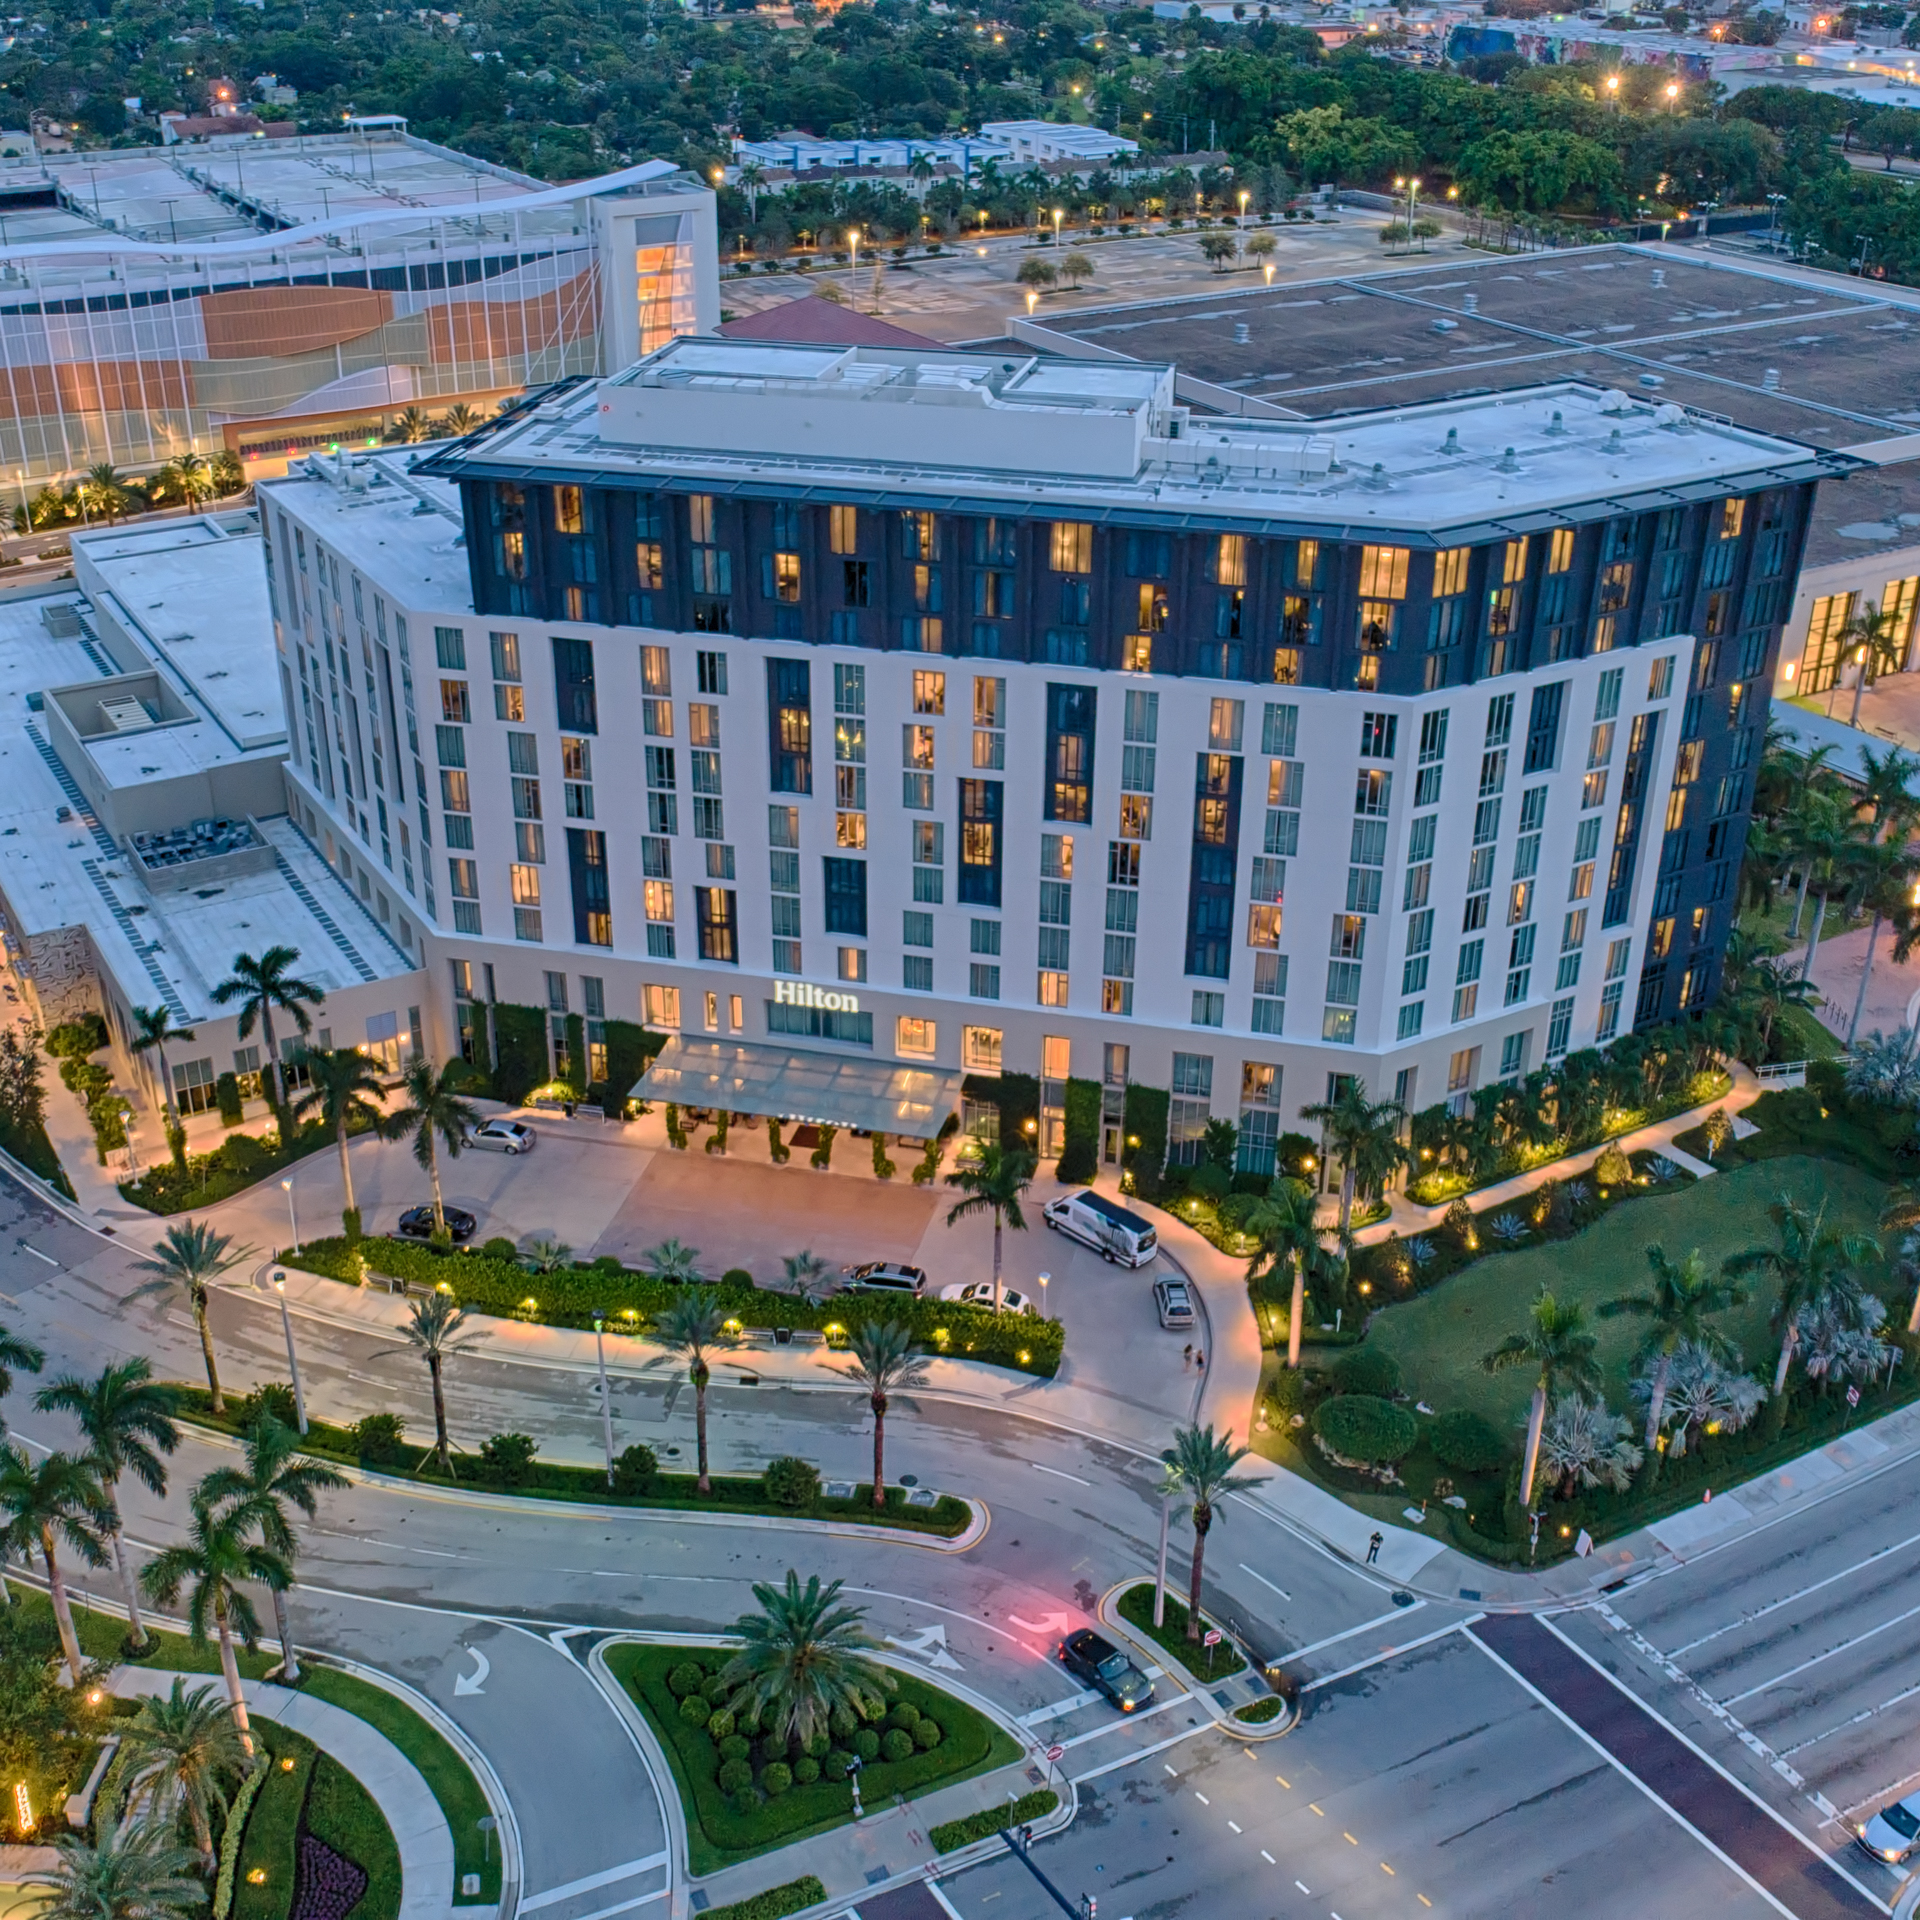 related-corporate-hospitality-square-hilton wpb (1)-scaled.jpg